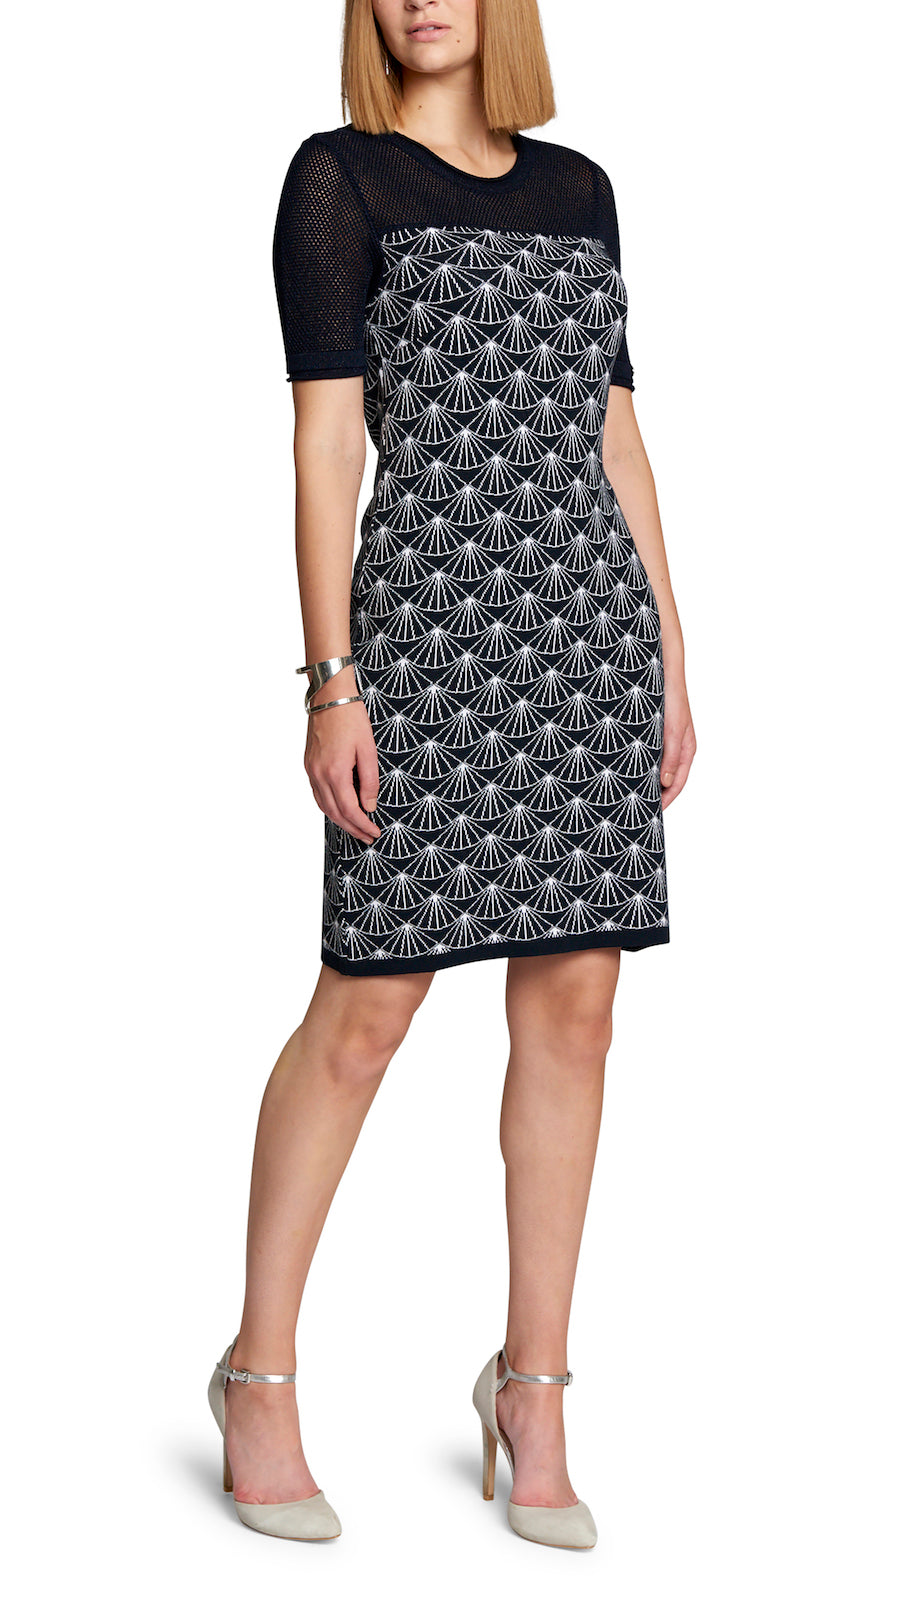 CONTEMPO Jasmine Jacquard Knit Dress, Navy/White